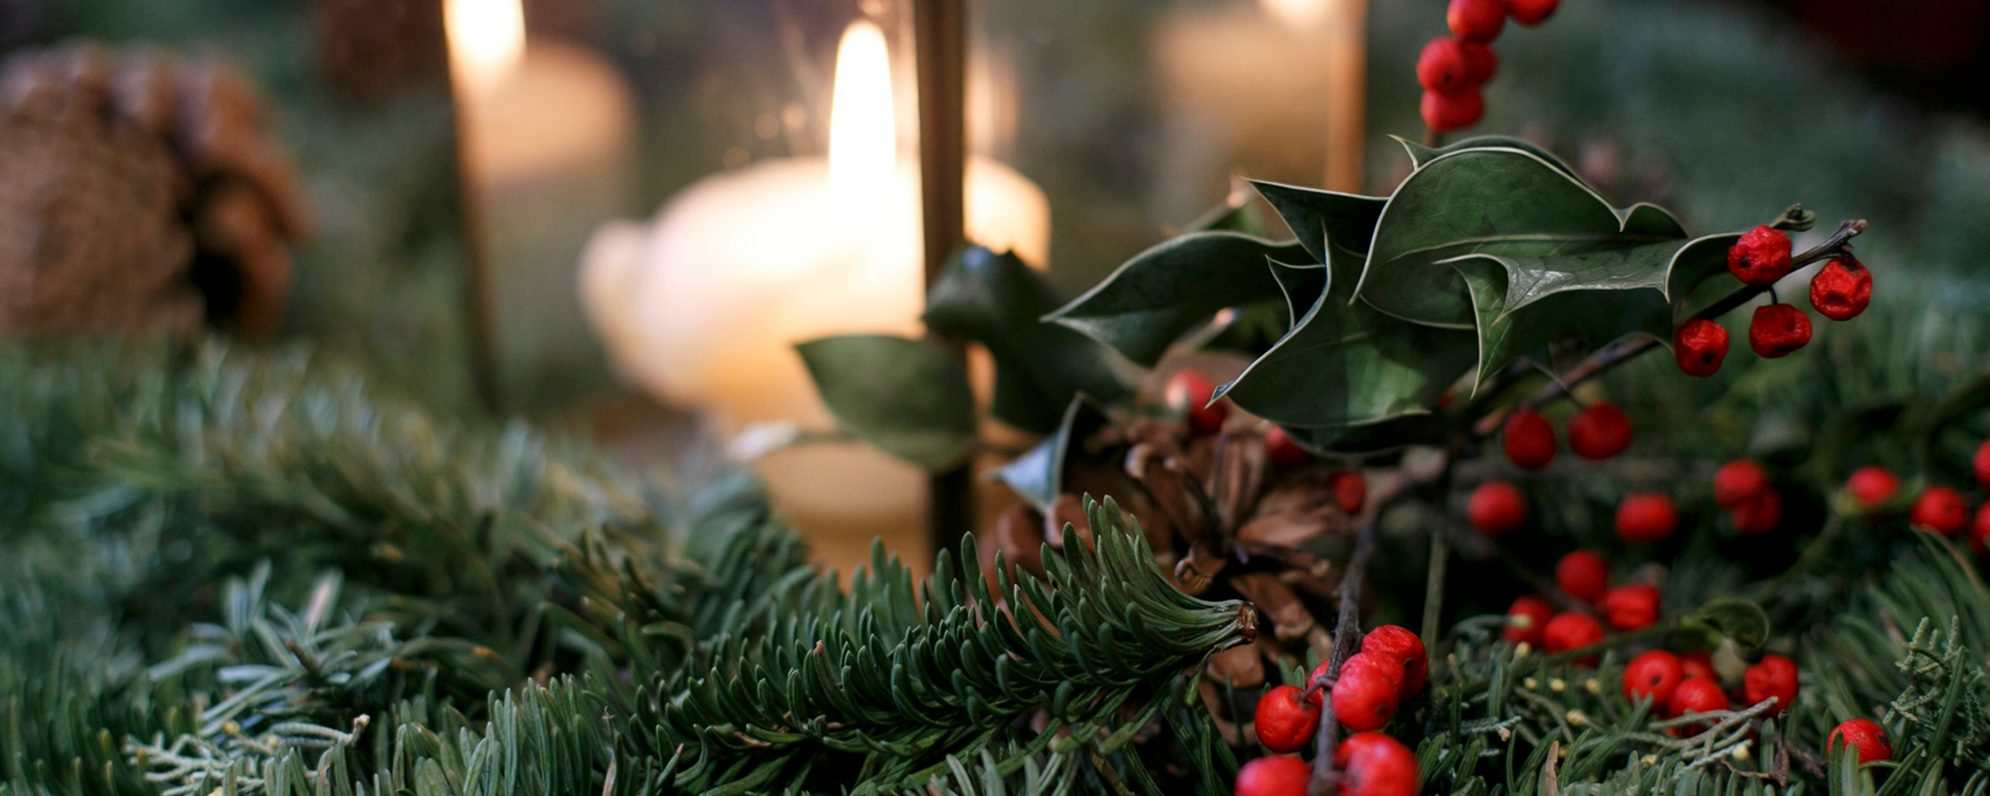 A close up of green holly, red berries and a lit candle.